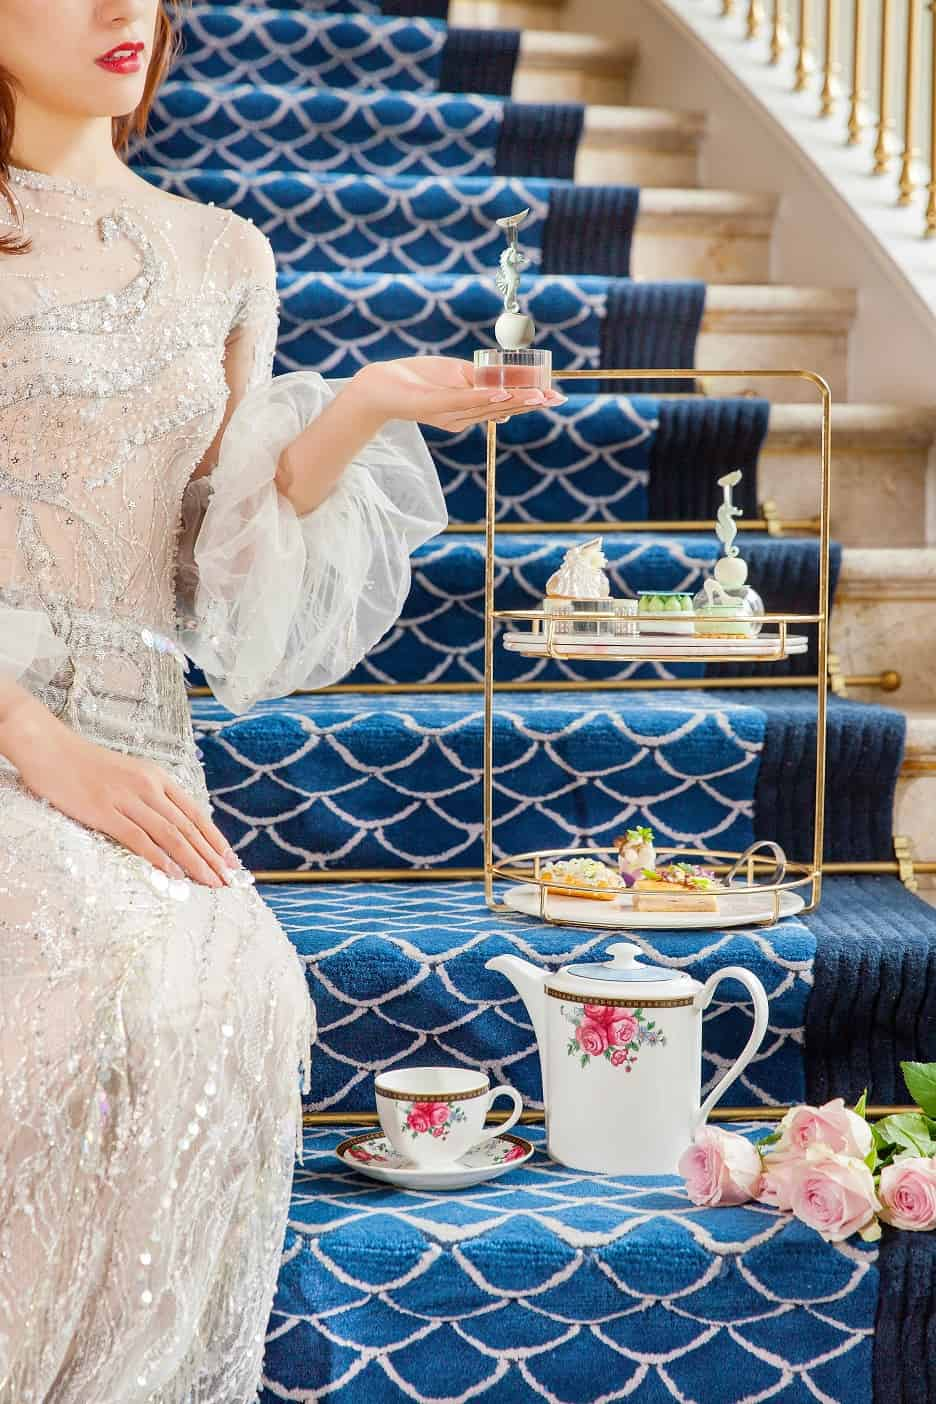 The Atelier by Prof. Jimmy Choo OBE Afternoon Tea 拂光掠影下午茶